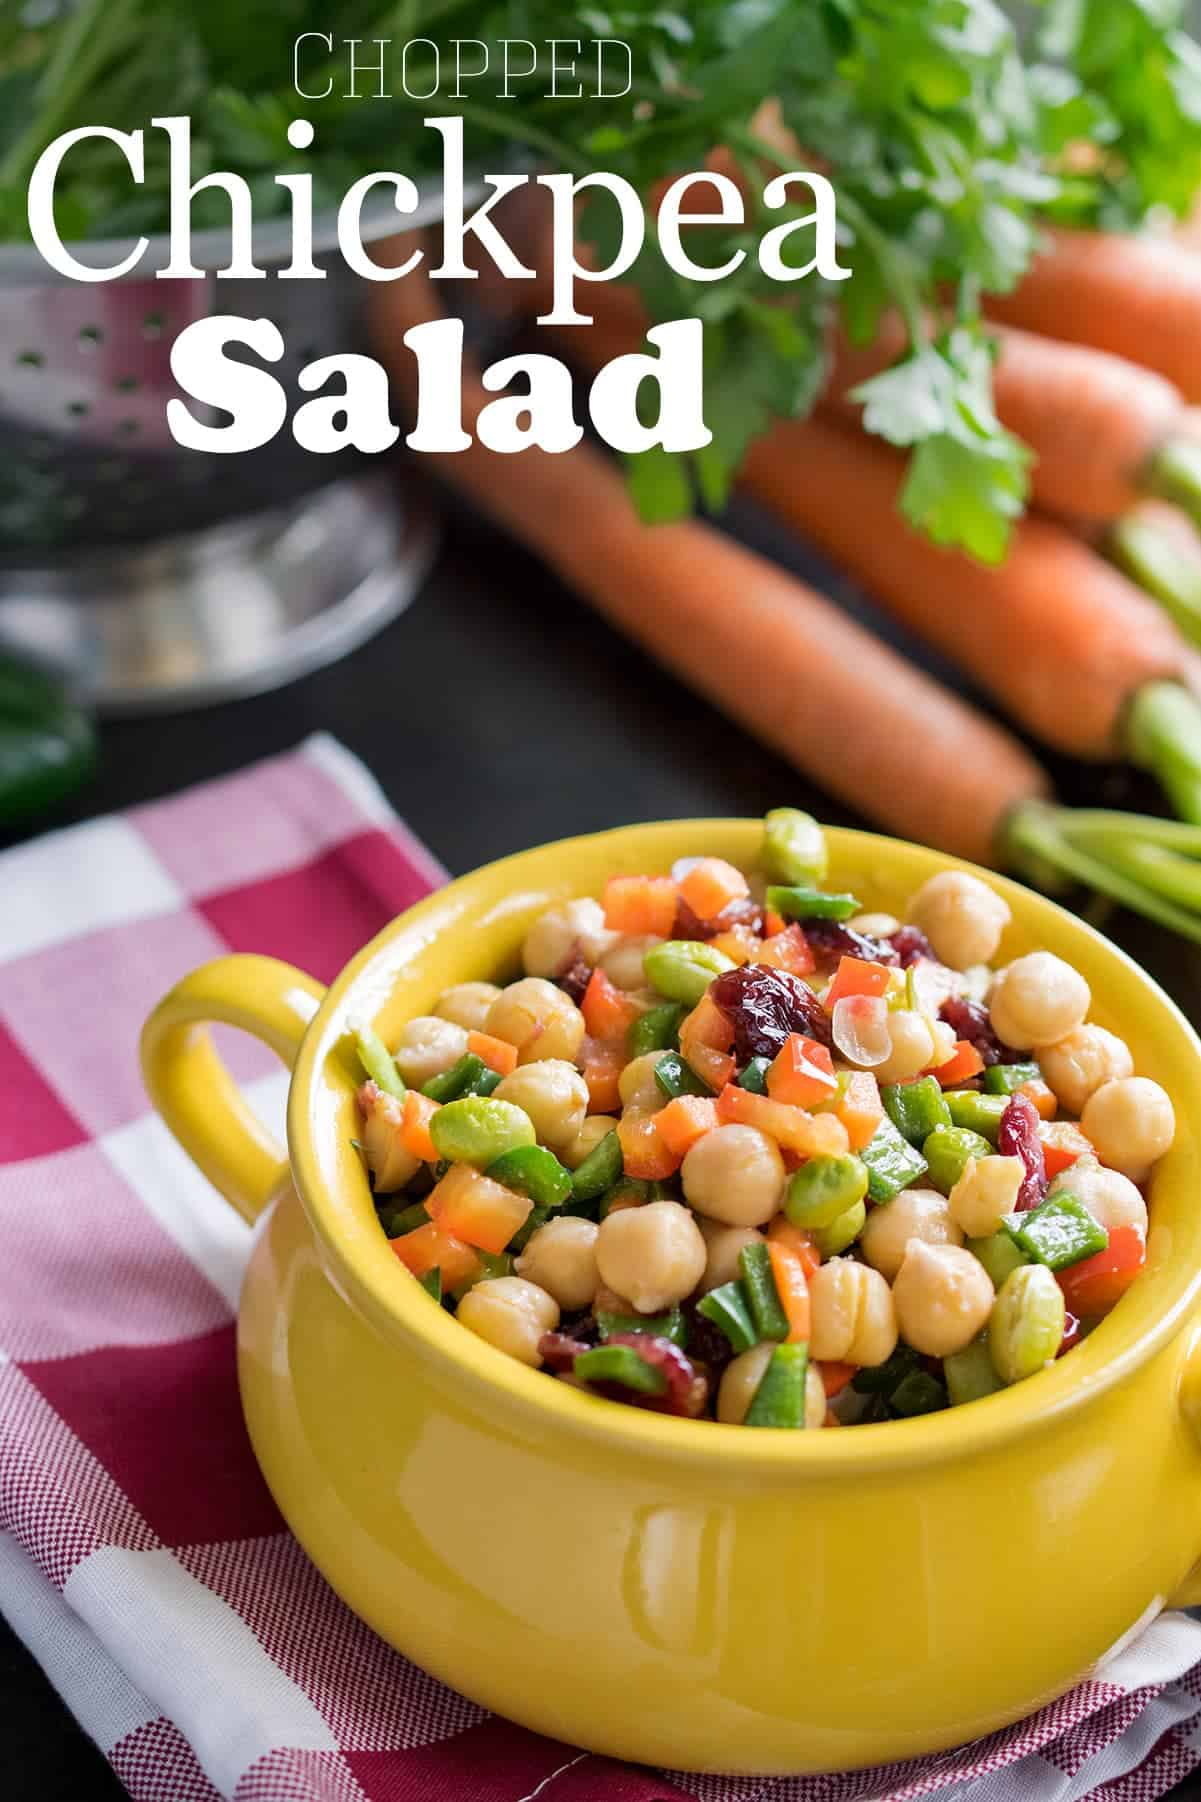 Chickpea Salad - diced fresh veggies, cranberries, chickpeas, & vinaigrette served in small yellow crock.